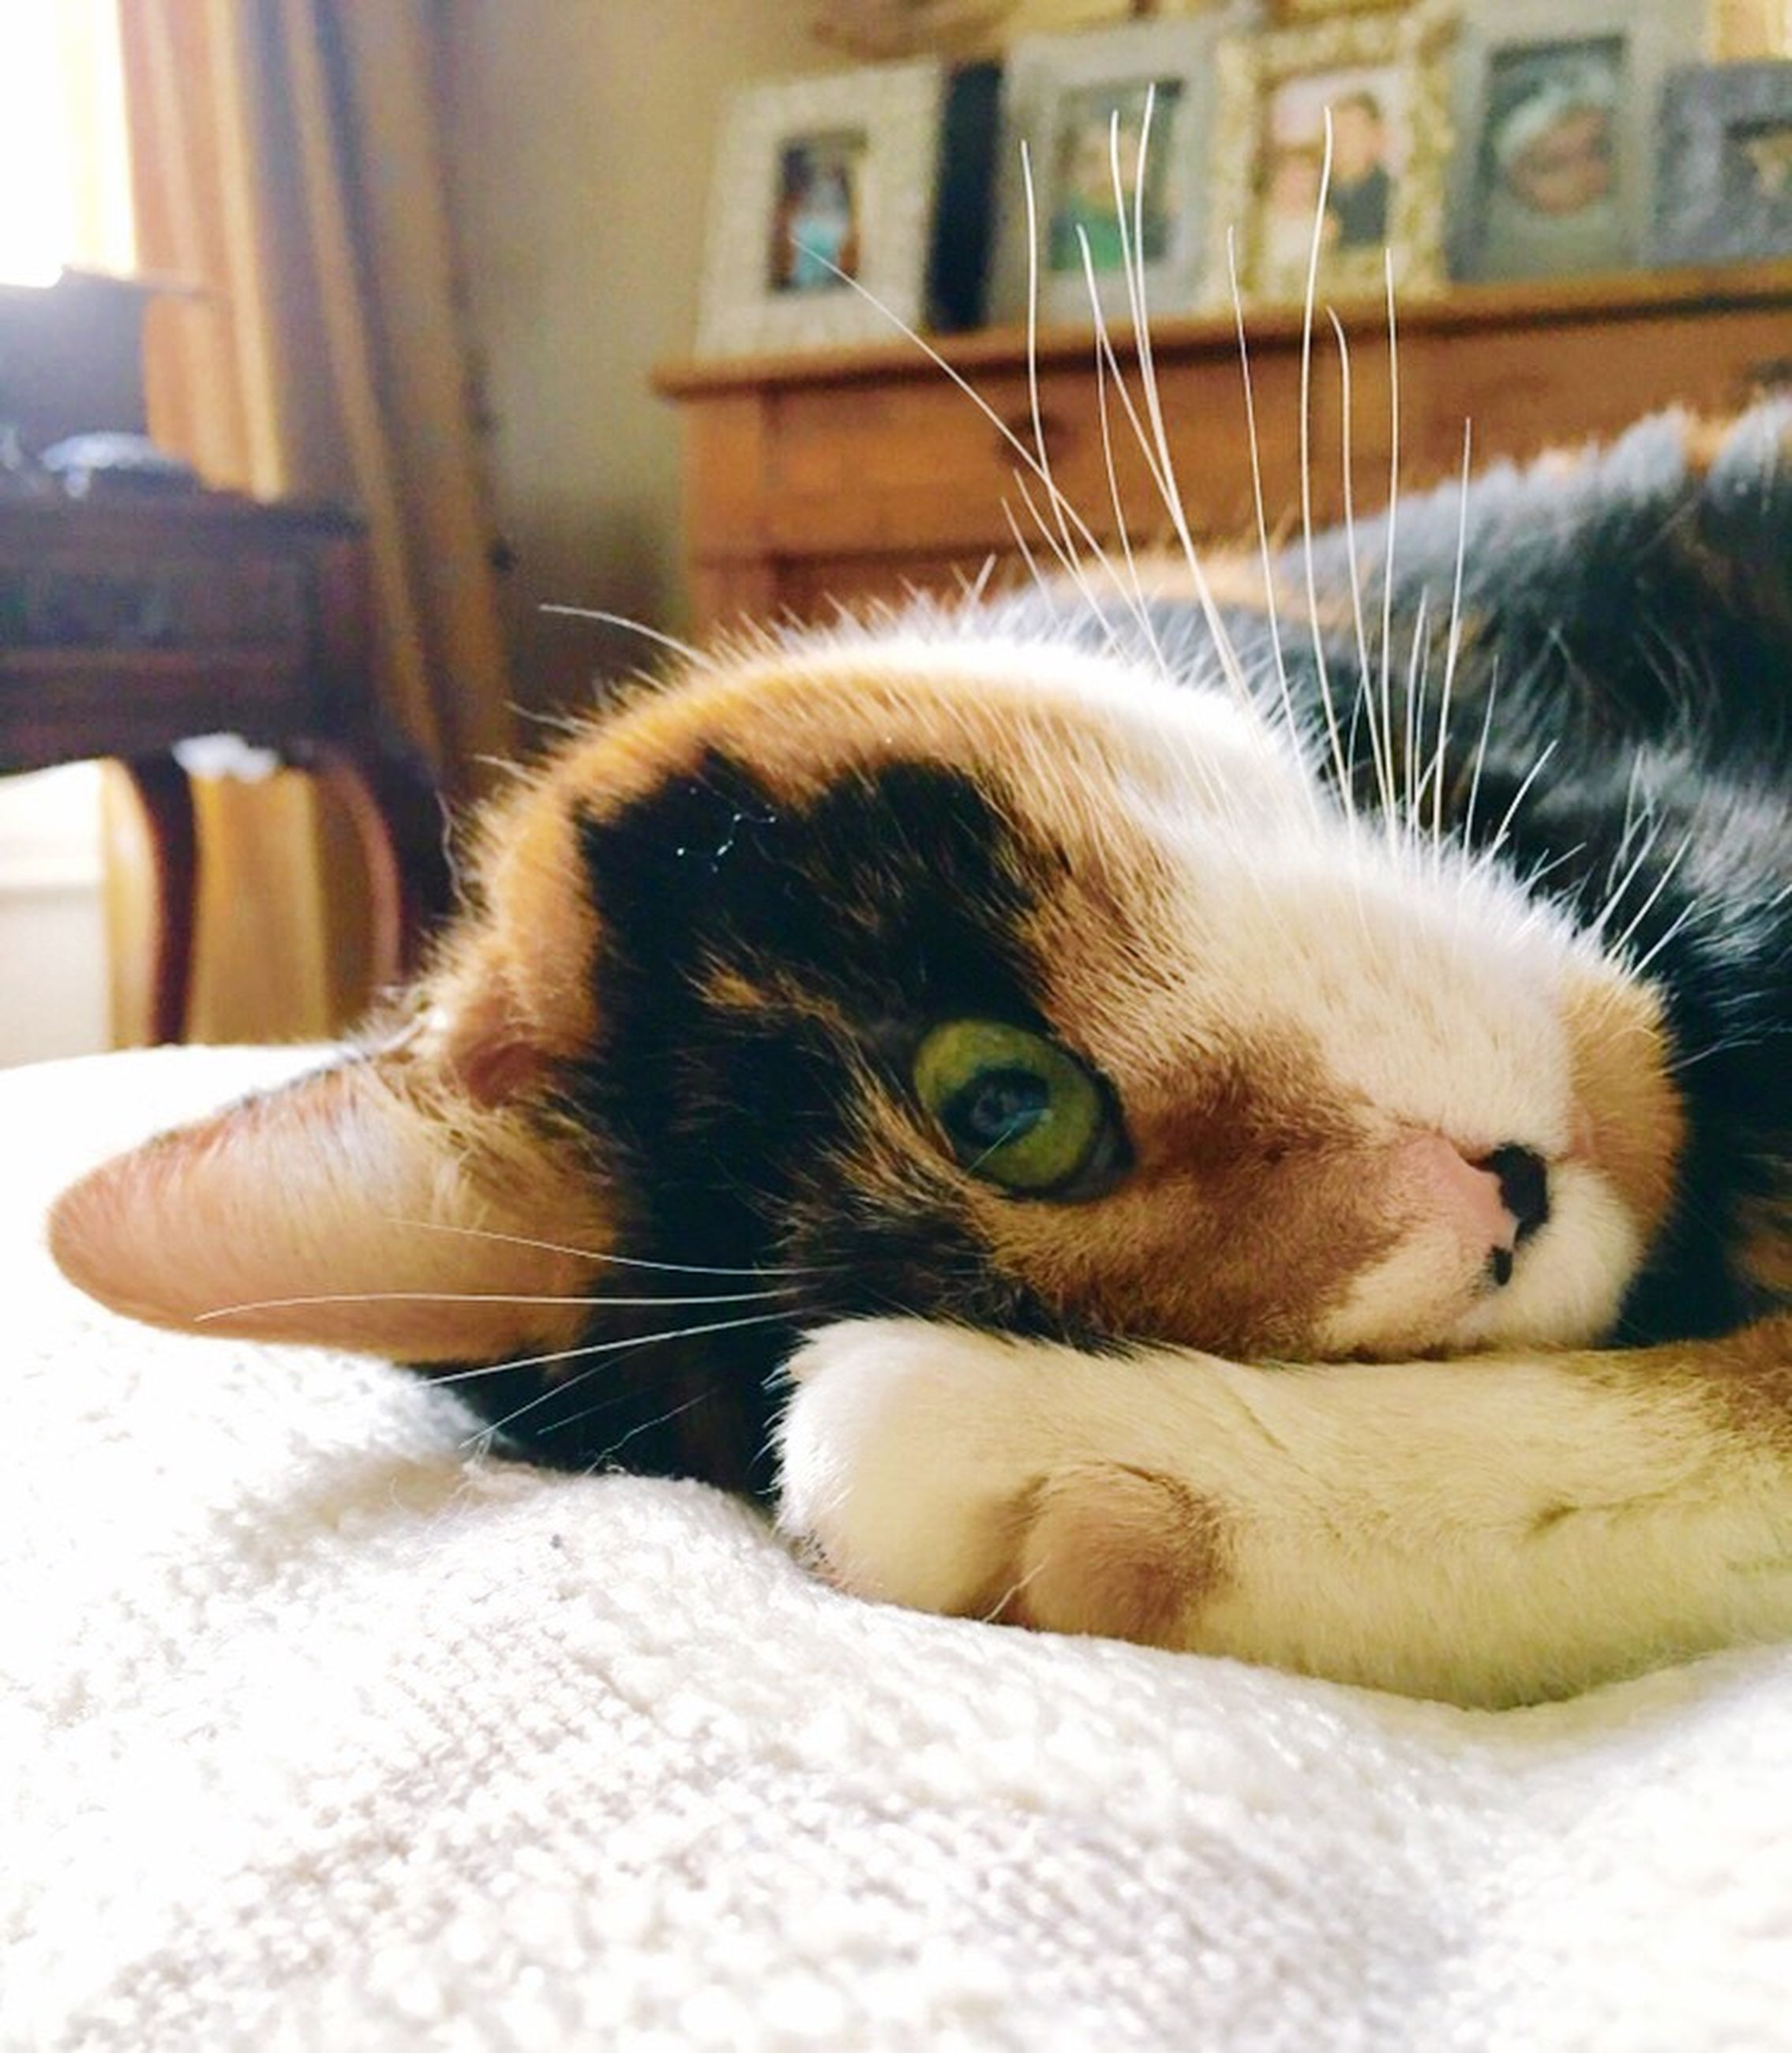 domestic cat, pets, domestic animals, one animal, animal themes, mammal, feline, close-up, indoors, no people, day